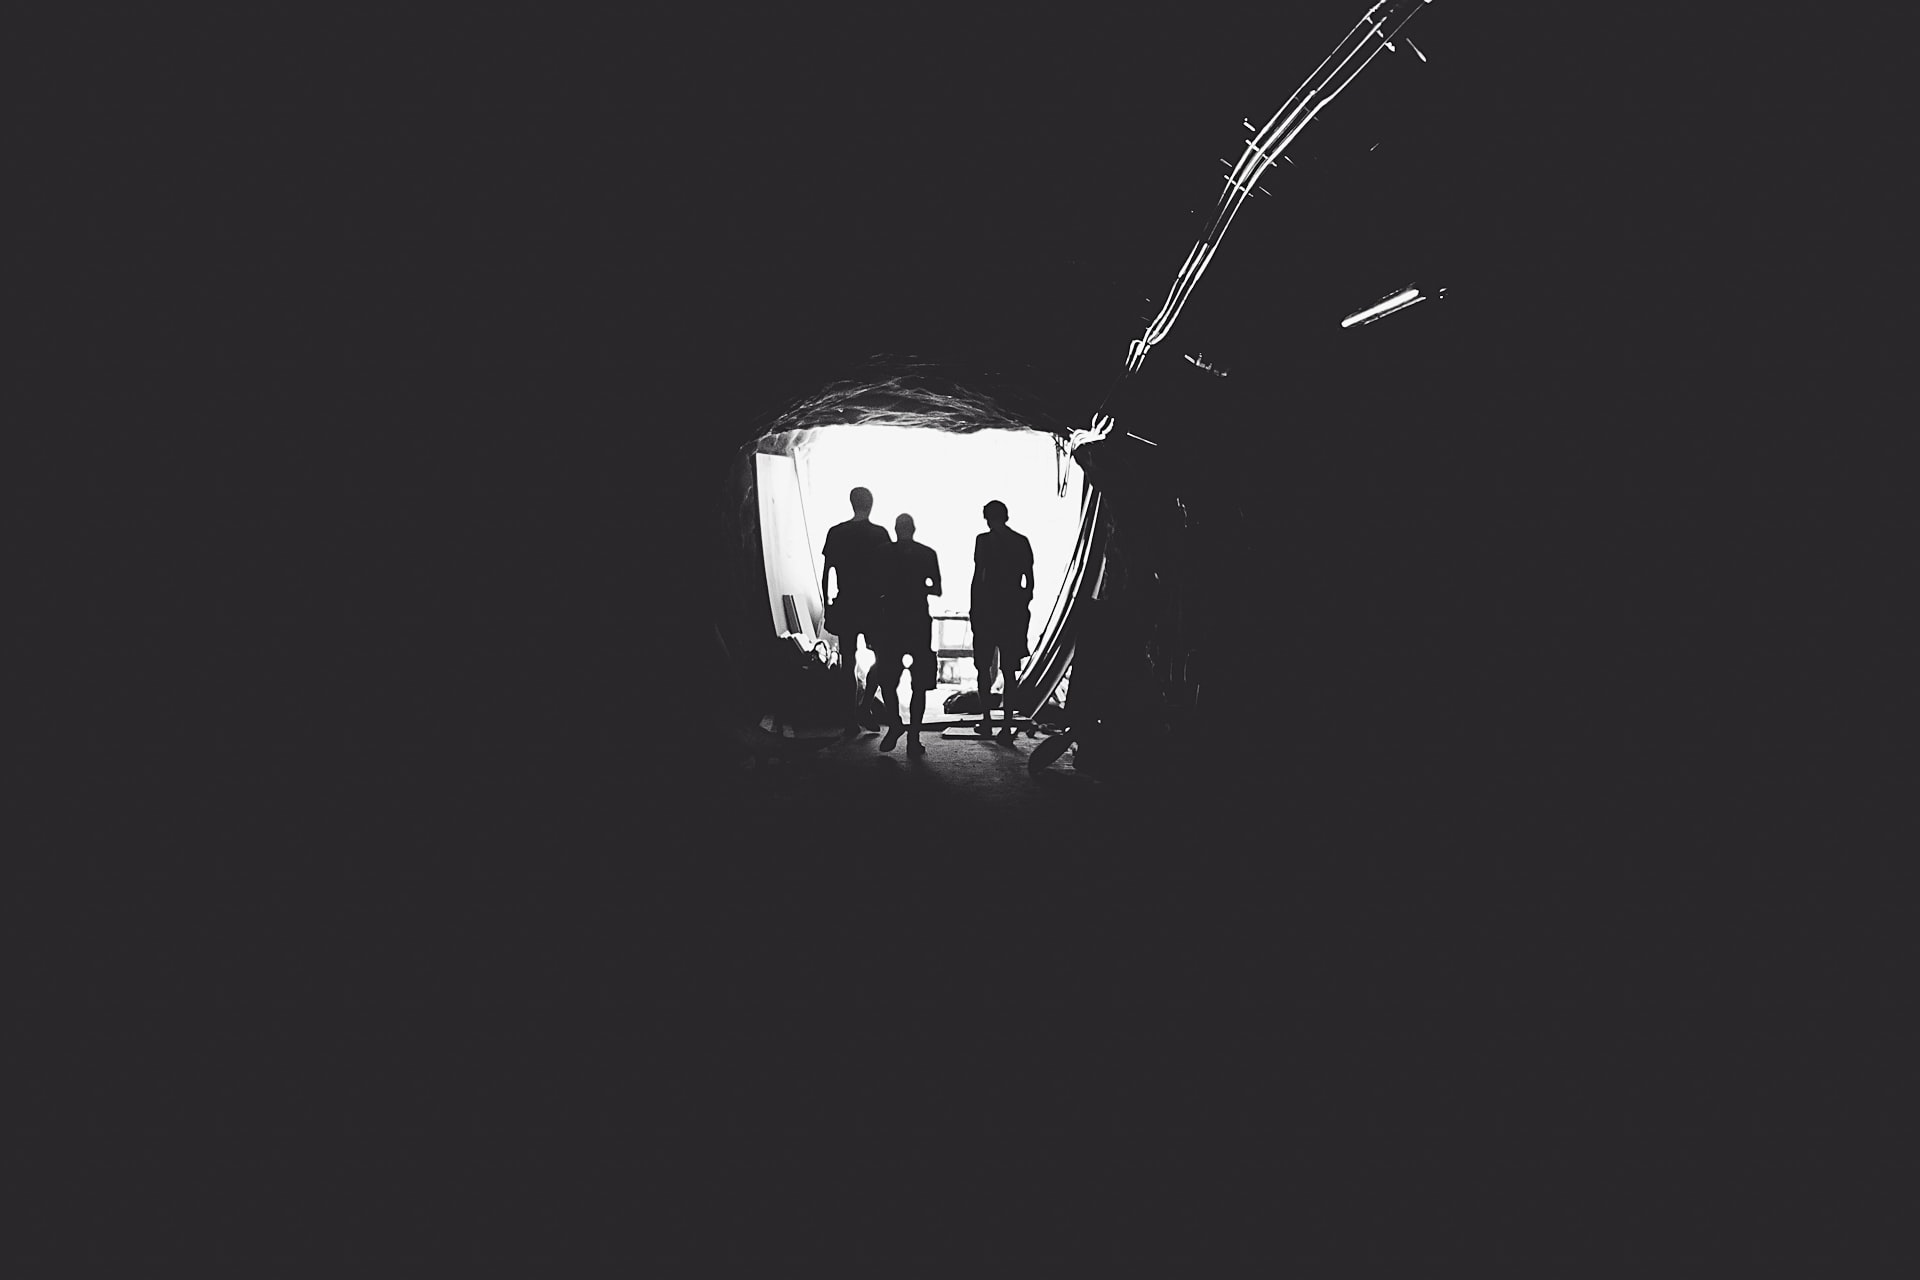 People walking down a dark tunnel into the light